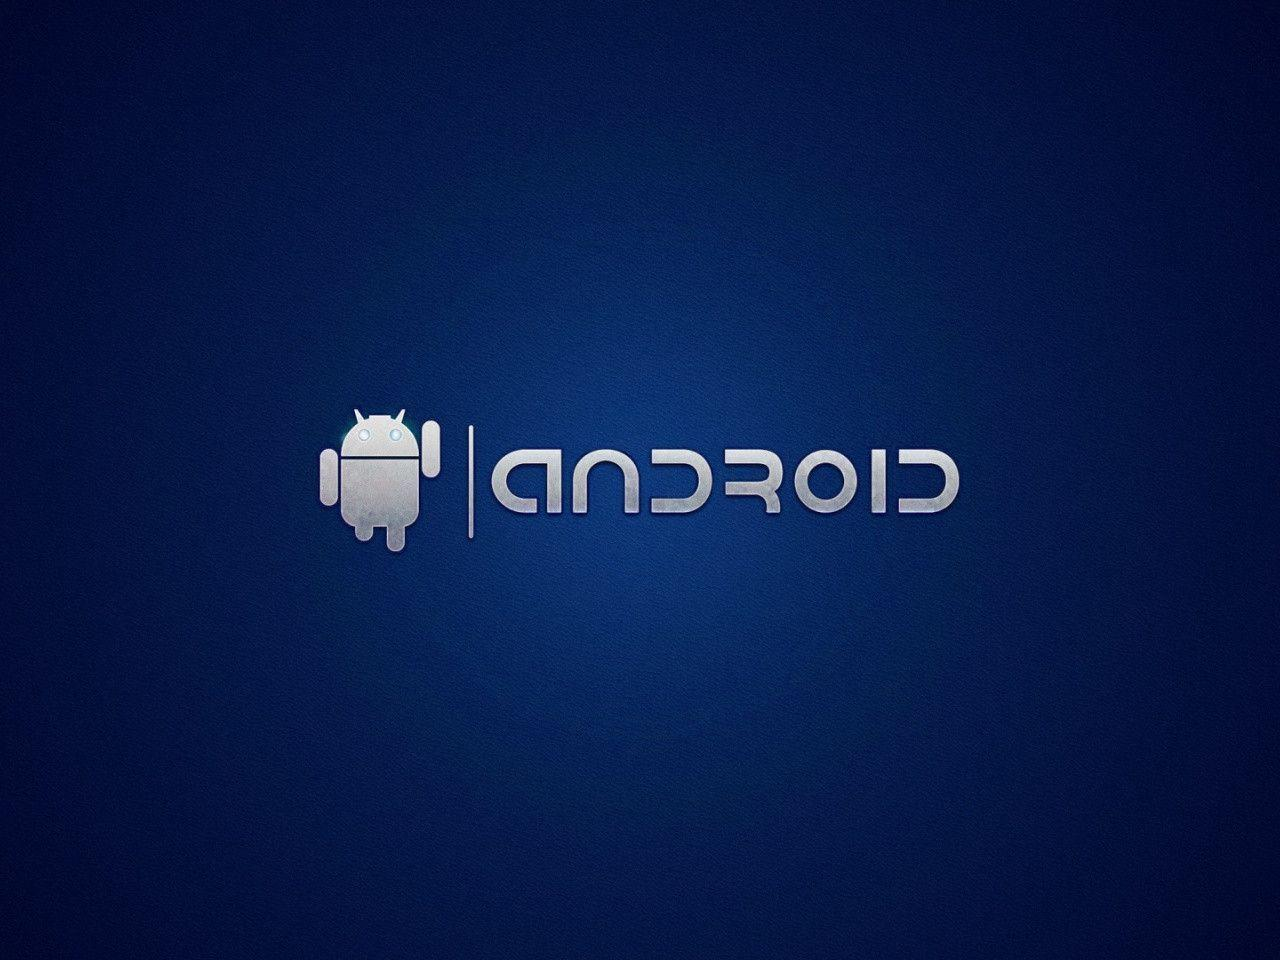 Android Wallpapers Blue 1280x960 Wallpapers